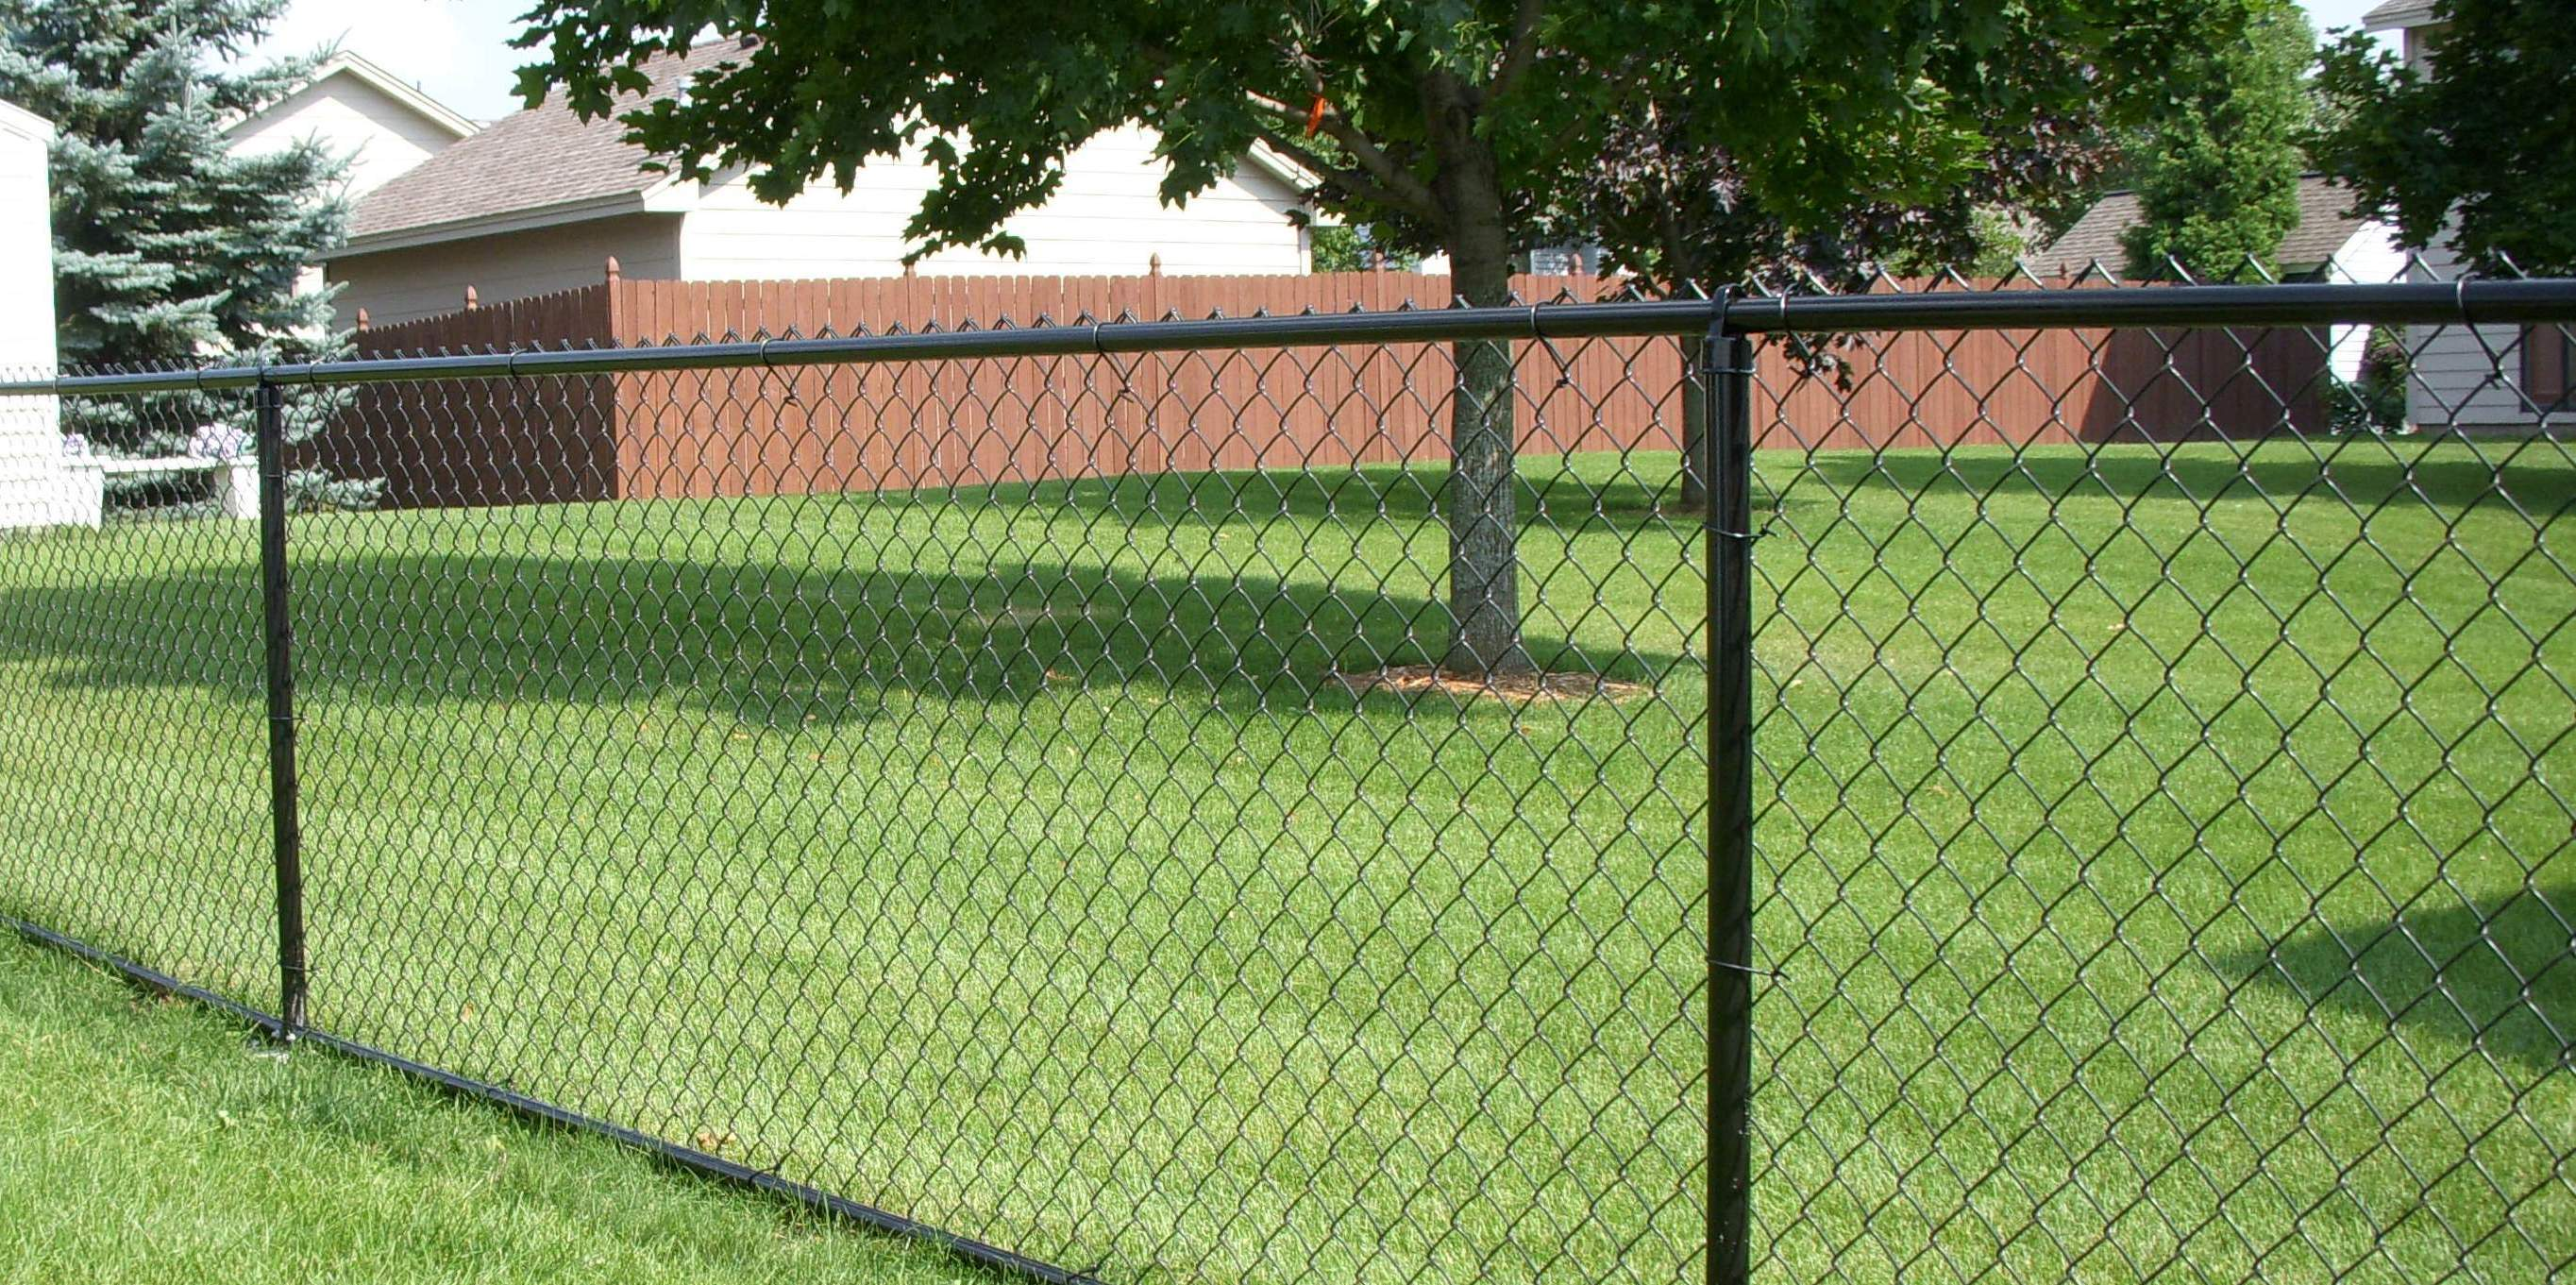 Chain link fence in salt lake city utah united